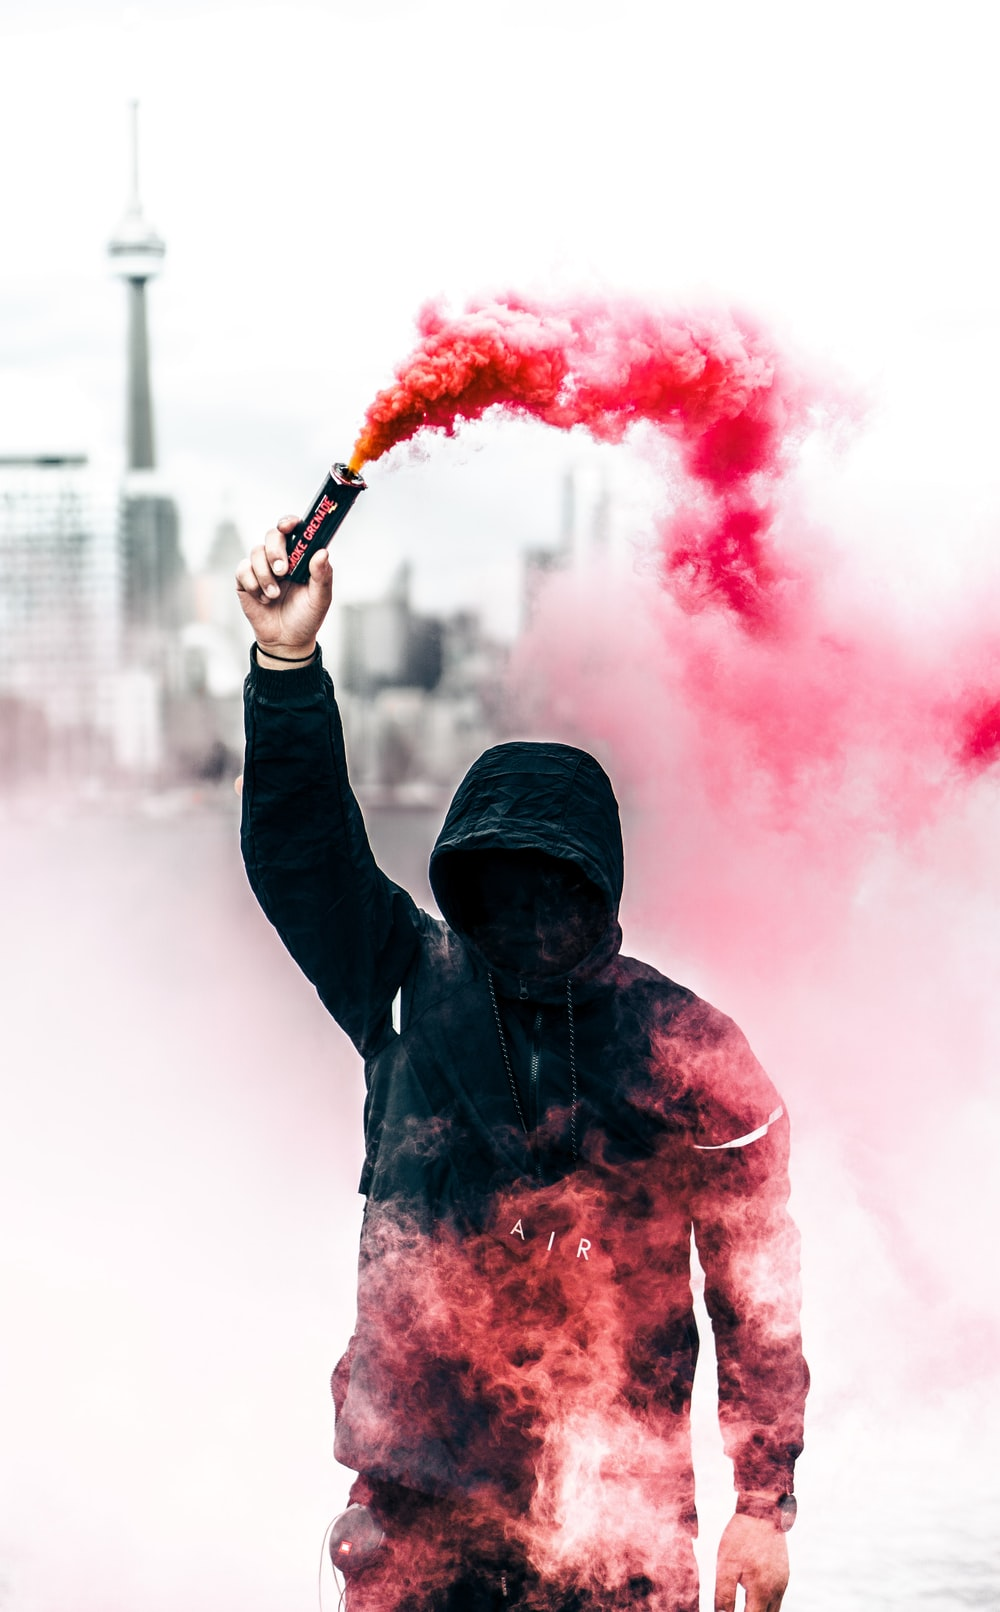 A person in a black hoodie with obscured face holds up a pink smoke grenade